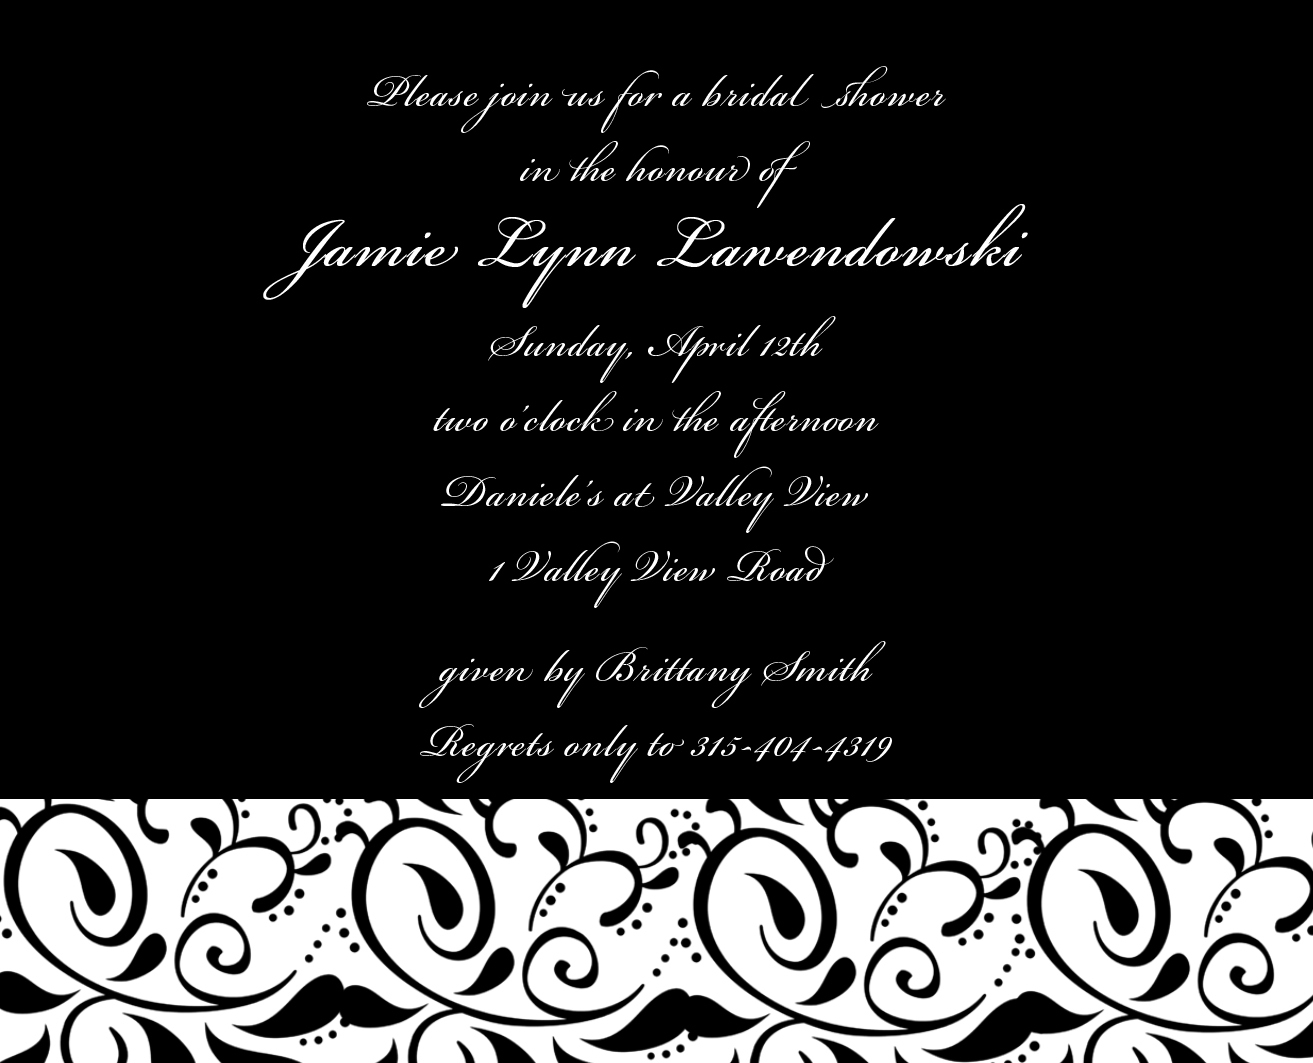 Inspiration, Bridesmaids, Bridesmaids Dresses, Stationery, Fashion, white, black, silver, invitation, Invitations, Wedding, Bridal, And, Board, Theme, Shower, Star, Desimone designs